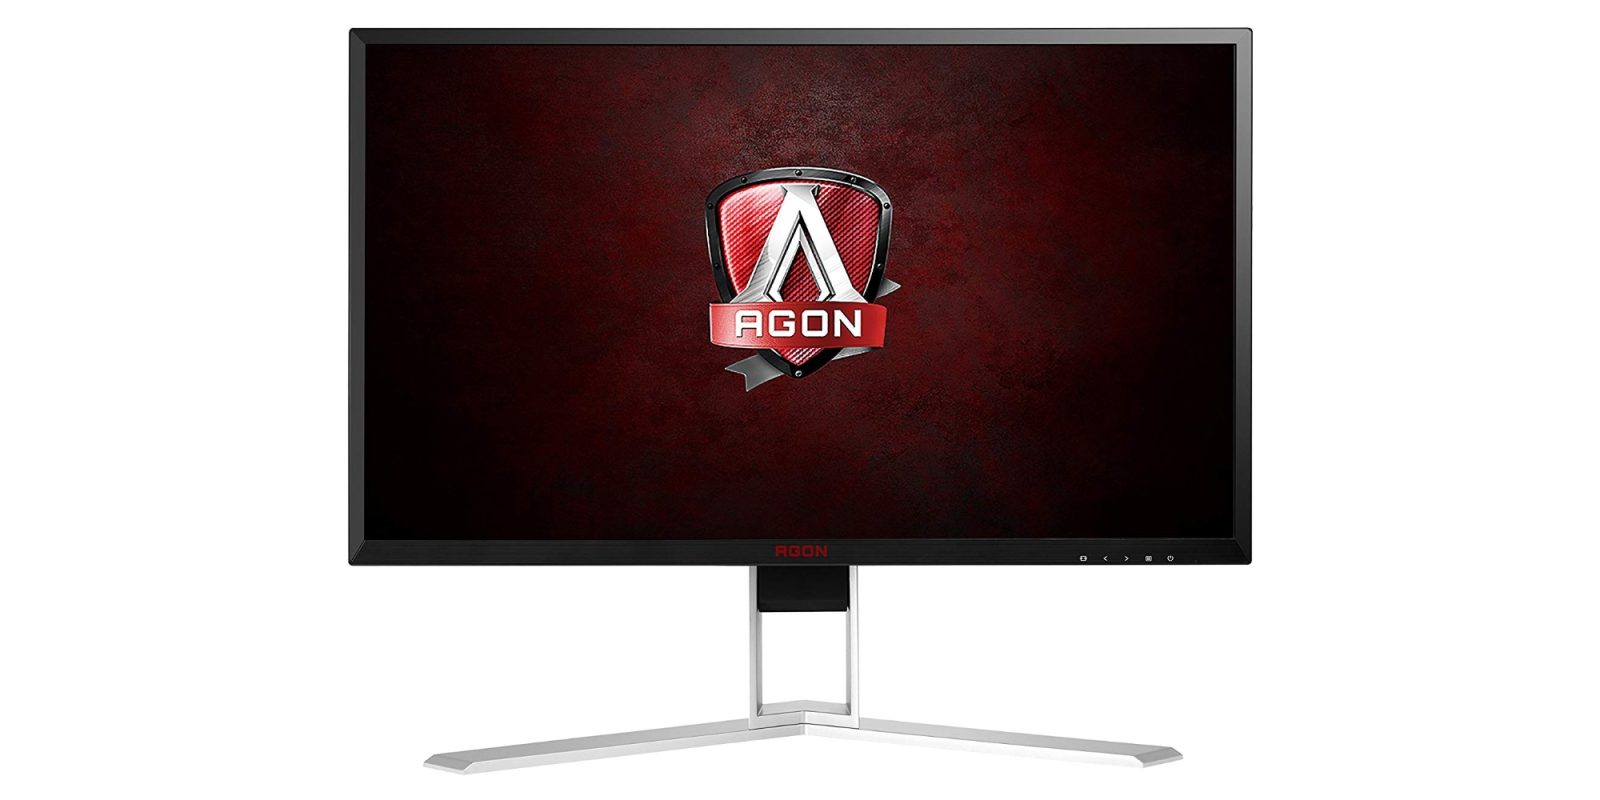 Slash $50 off AOC's 24-inch 1440p 144Hz Gaming Monitor at $200, more from $170